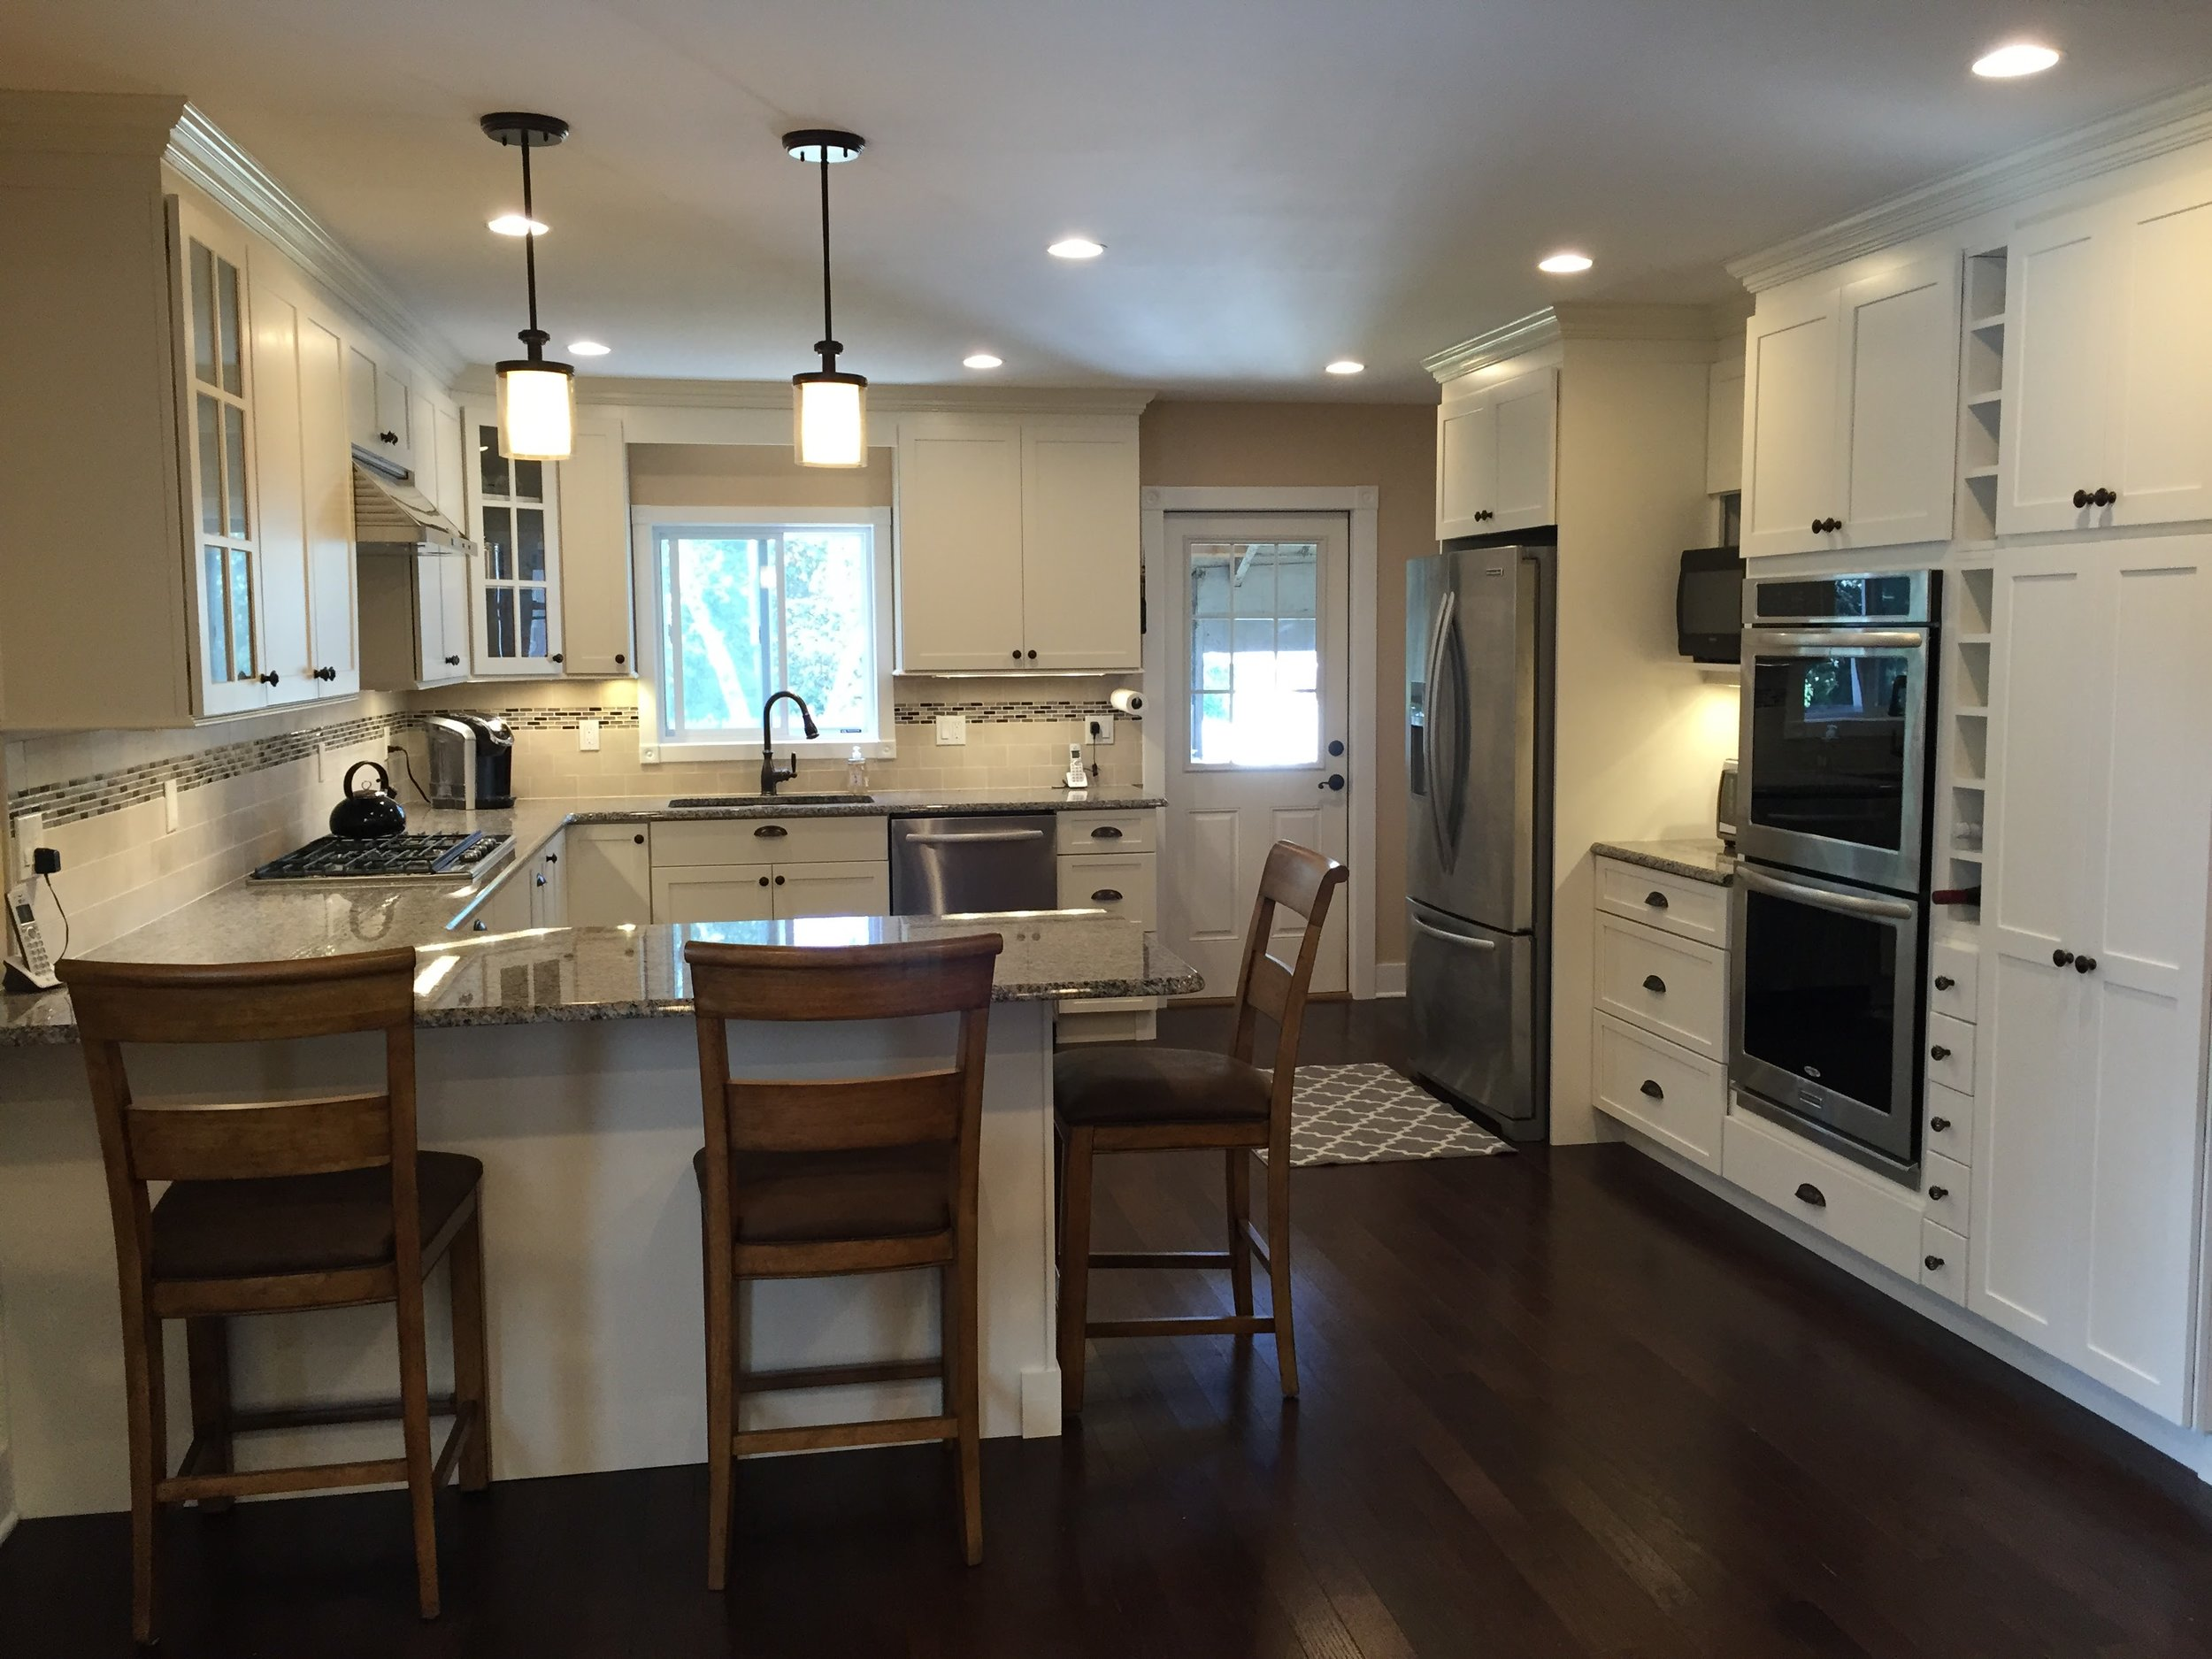 Shaw Remodeling Kitchen Flooring Trends East Lyme CT